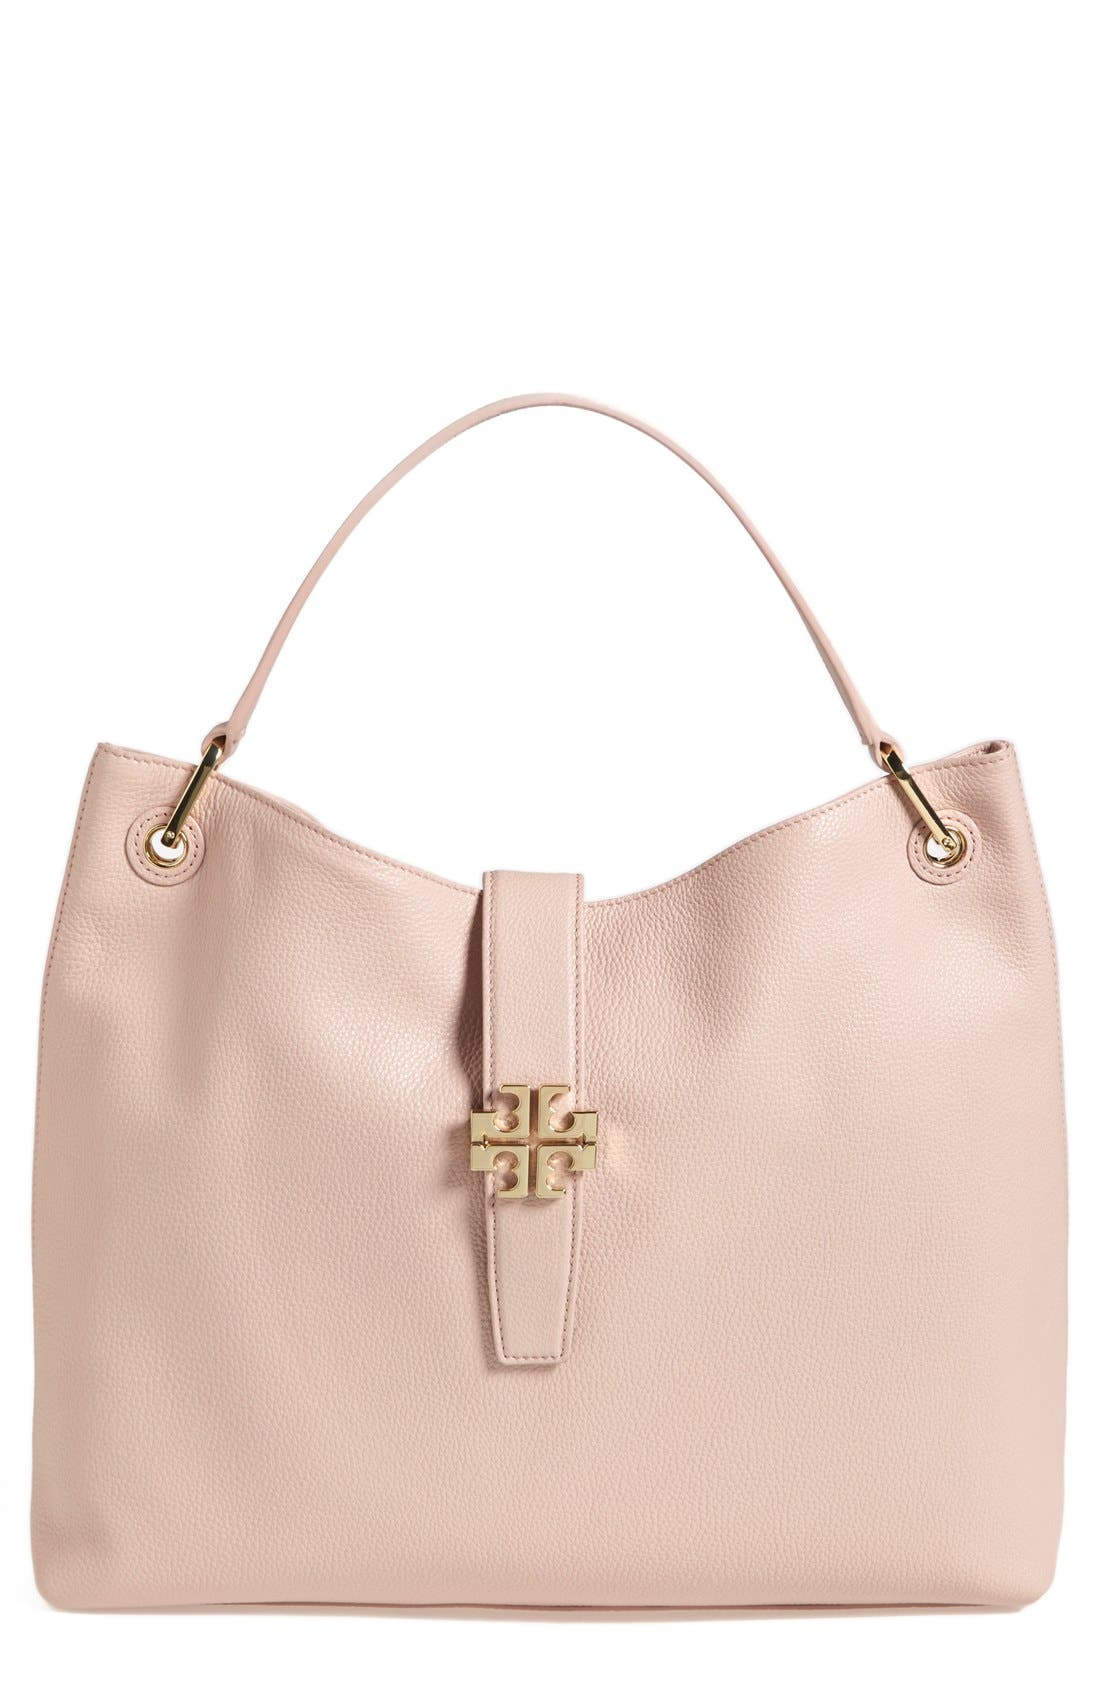 Alternate Image 1 Selected - Tory Burch 'Plaque' Hobo